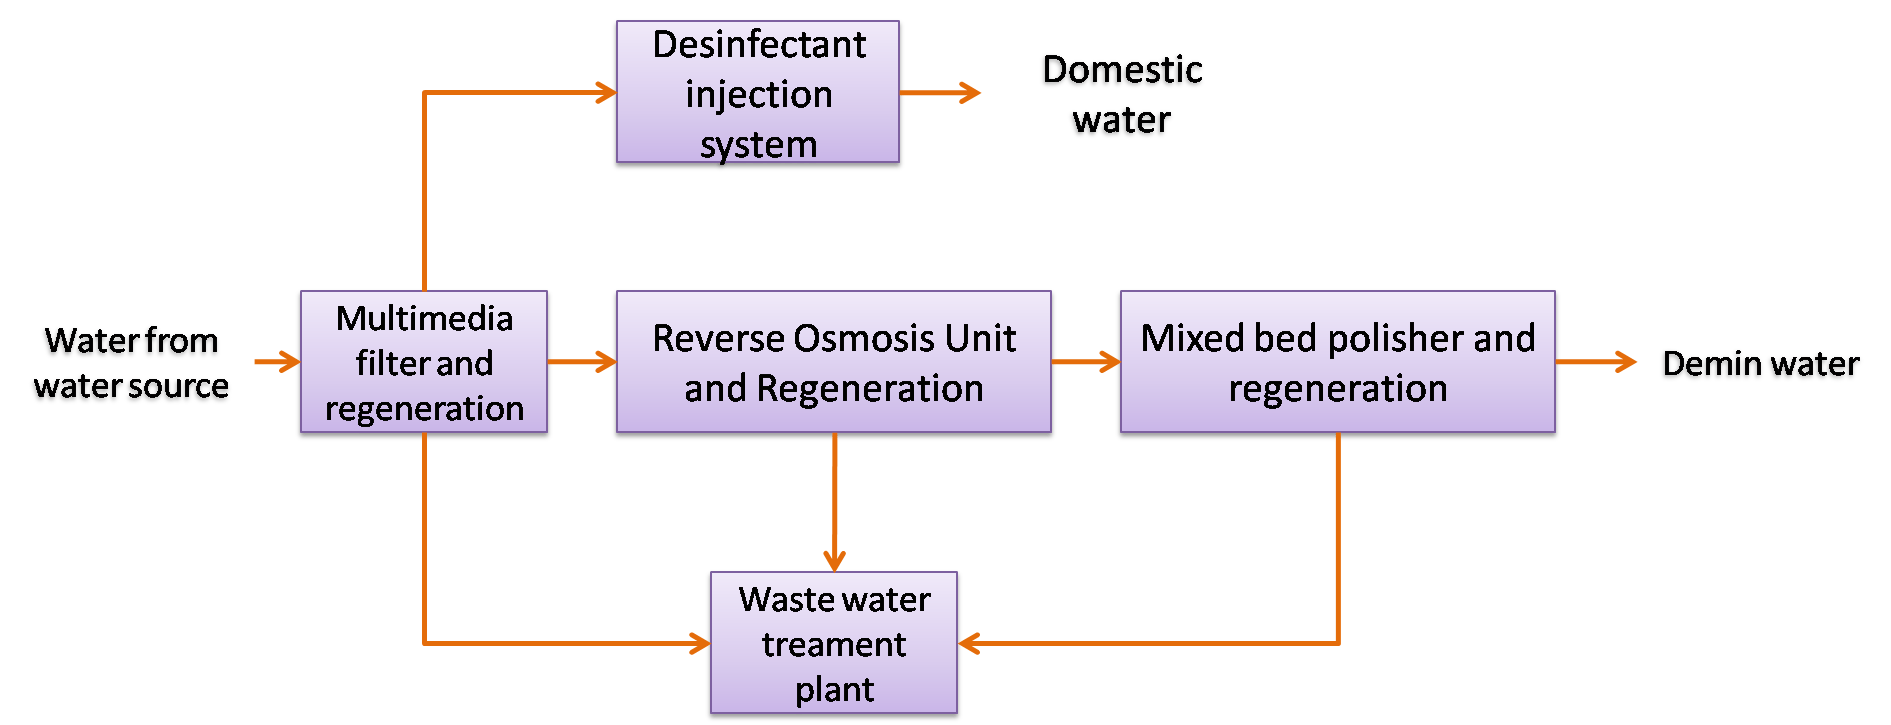 water treatment plant typical configuration and processes Basic Water Treatment Diagram  Simple Water Treatment Plant Schematic Water Treatment Filter Diagram Purification Diagram